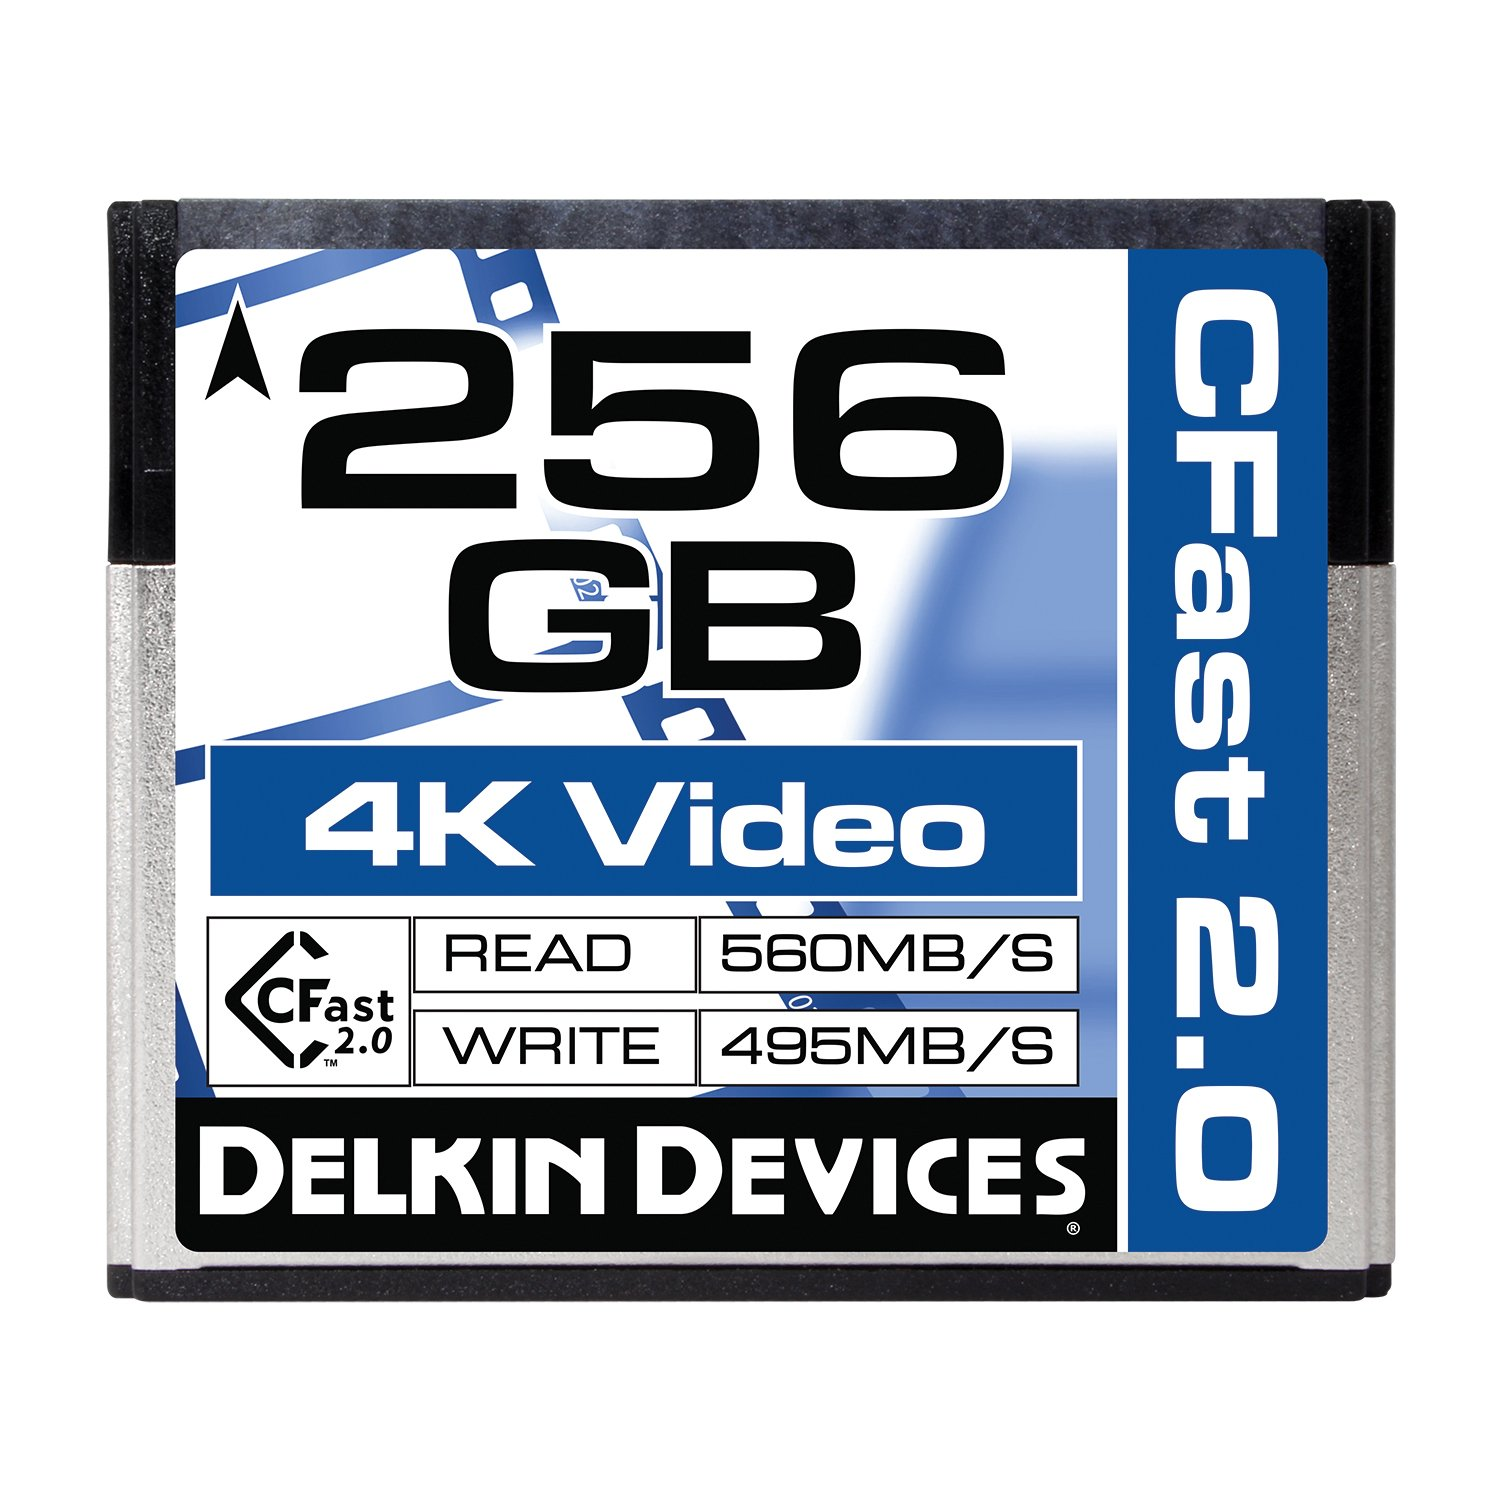 Delkin 256GB Cinema CFast 2.0 Memory Card (DDCFST560256) by Delkin